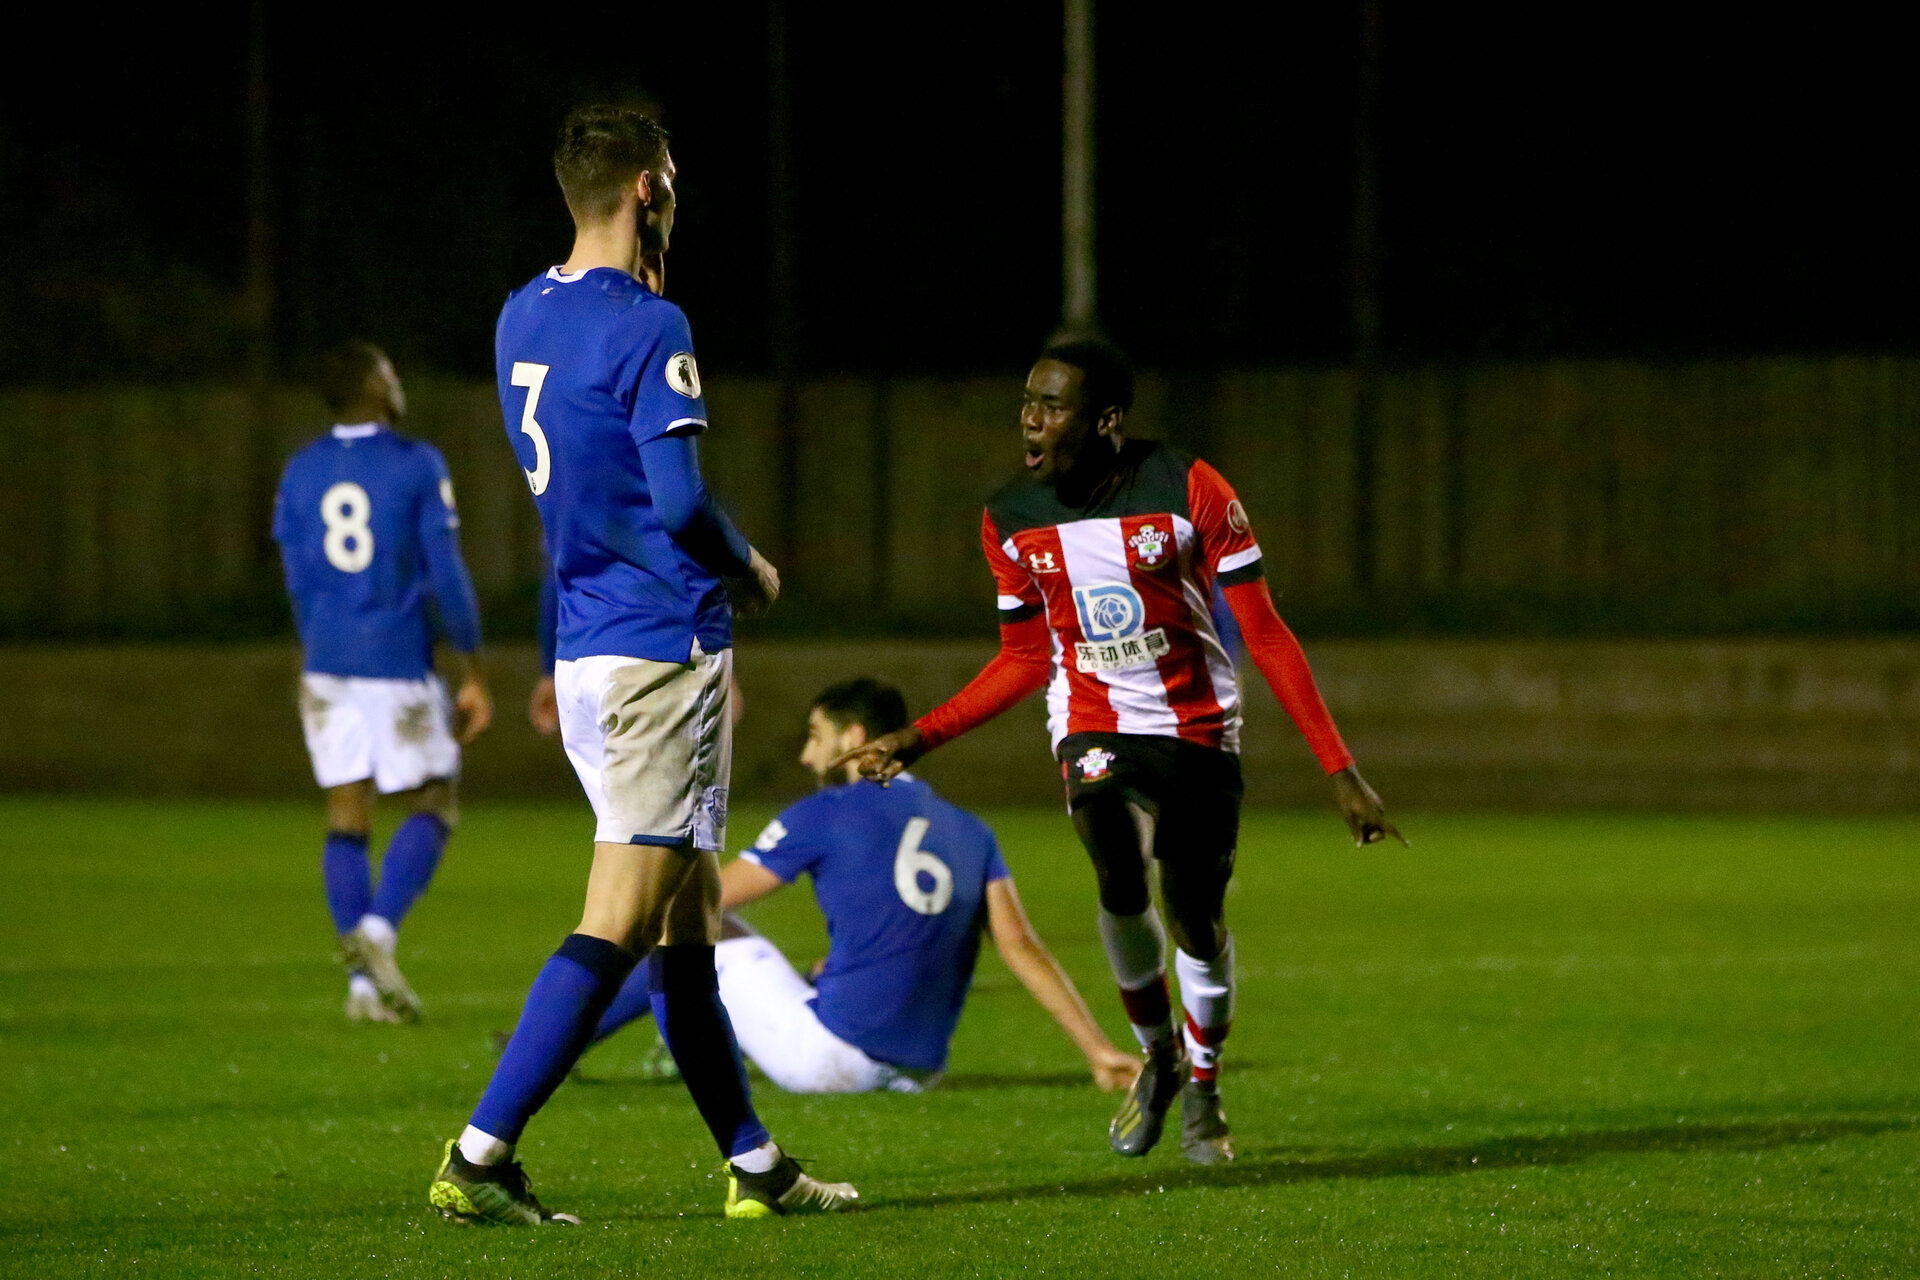 SOUTHAMPTON, ENGLAND - JANUARY 06: during the Premier League 2 match between Southampton U23 and Everton at Staplewood Training Ground on January 6, 2020 in Southampton, United Kingdom. (Photo by Isabelle Field/Southampton FC via Getty Images)